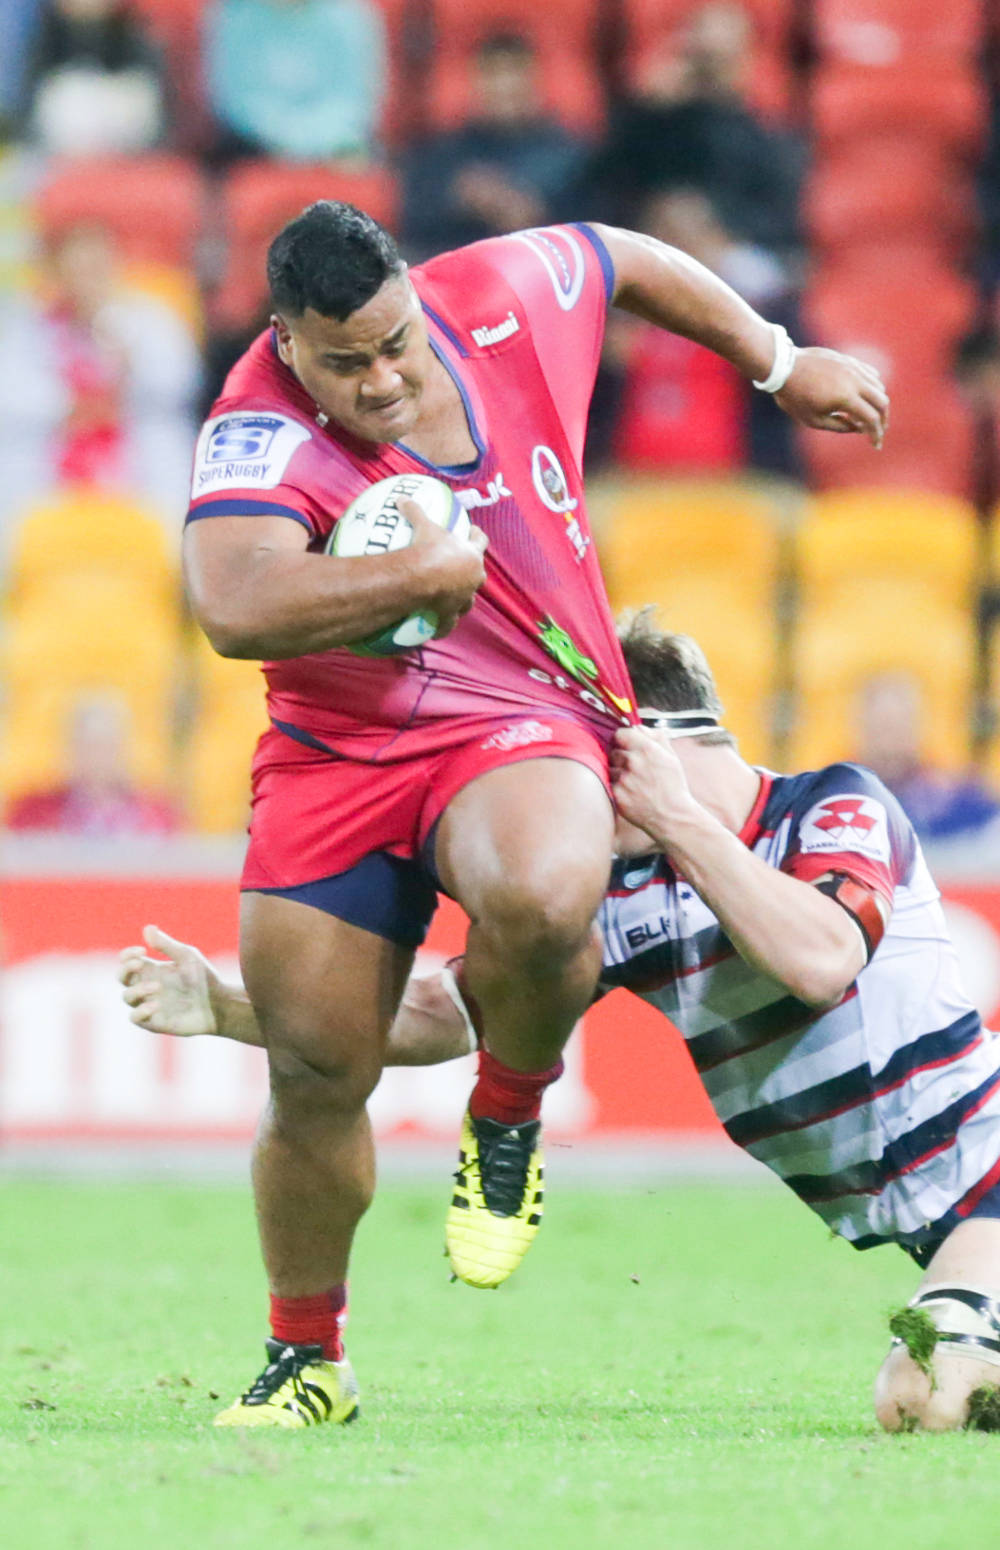 Taniela Tupuo breaking a tackle against the Rebels